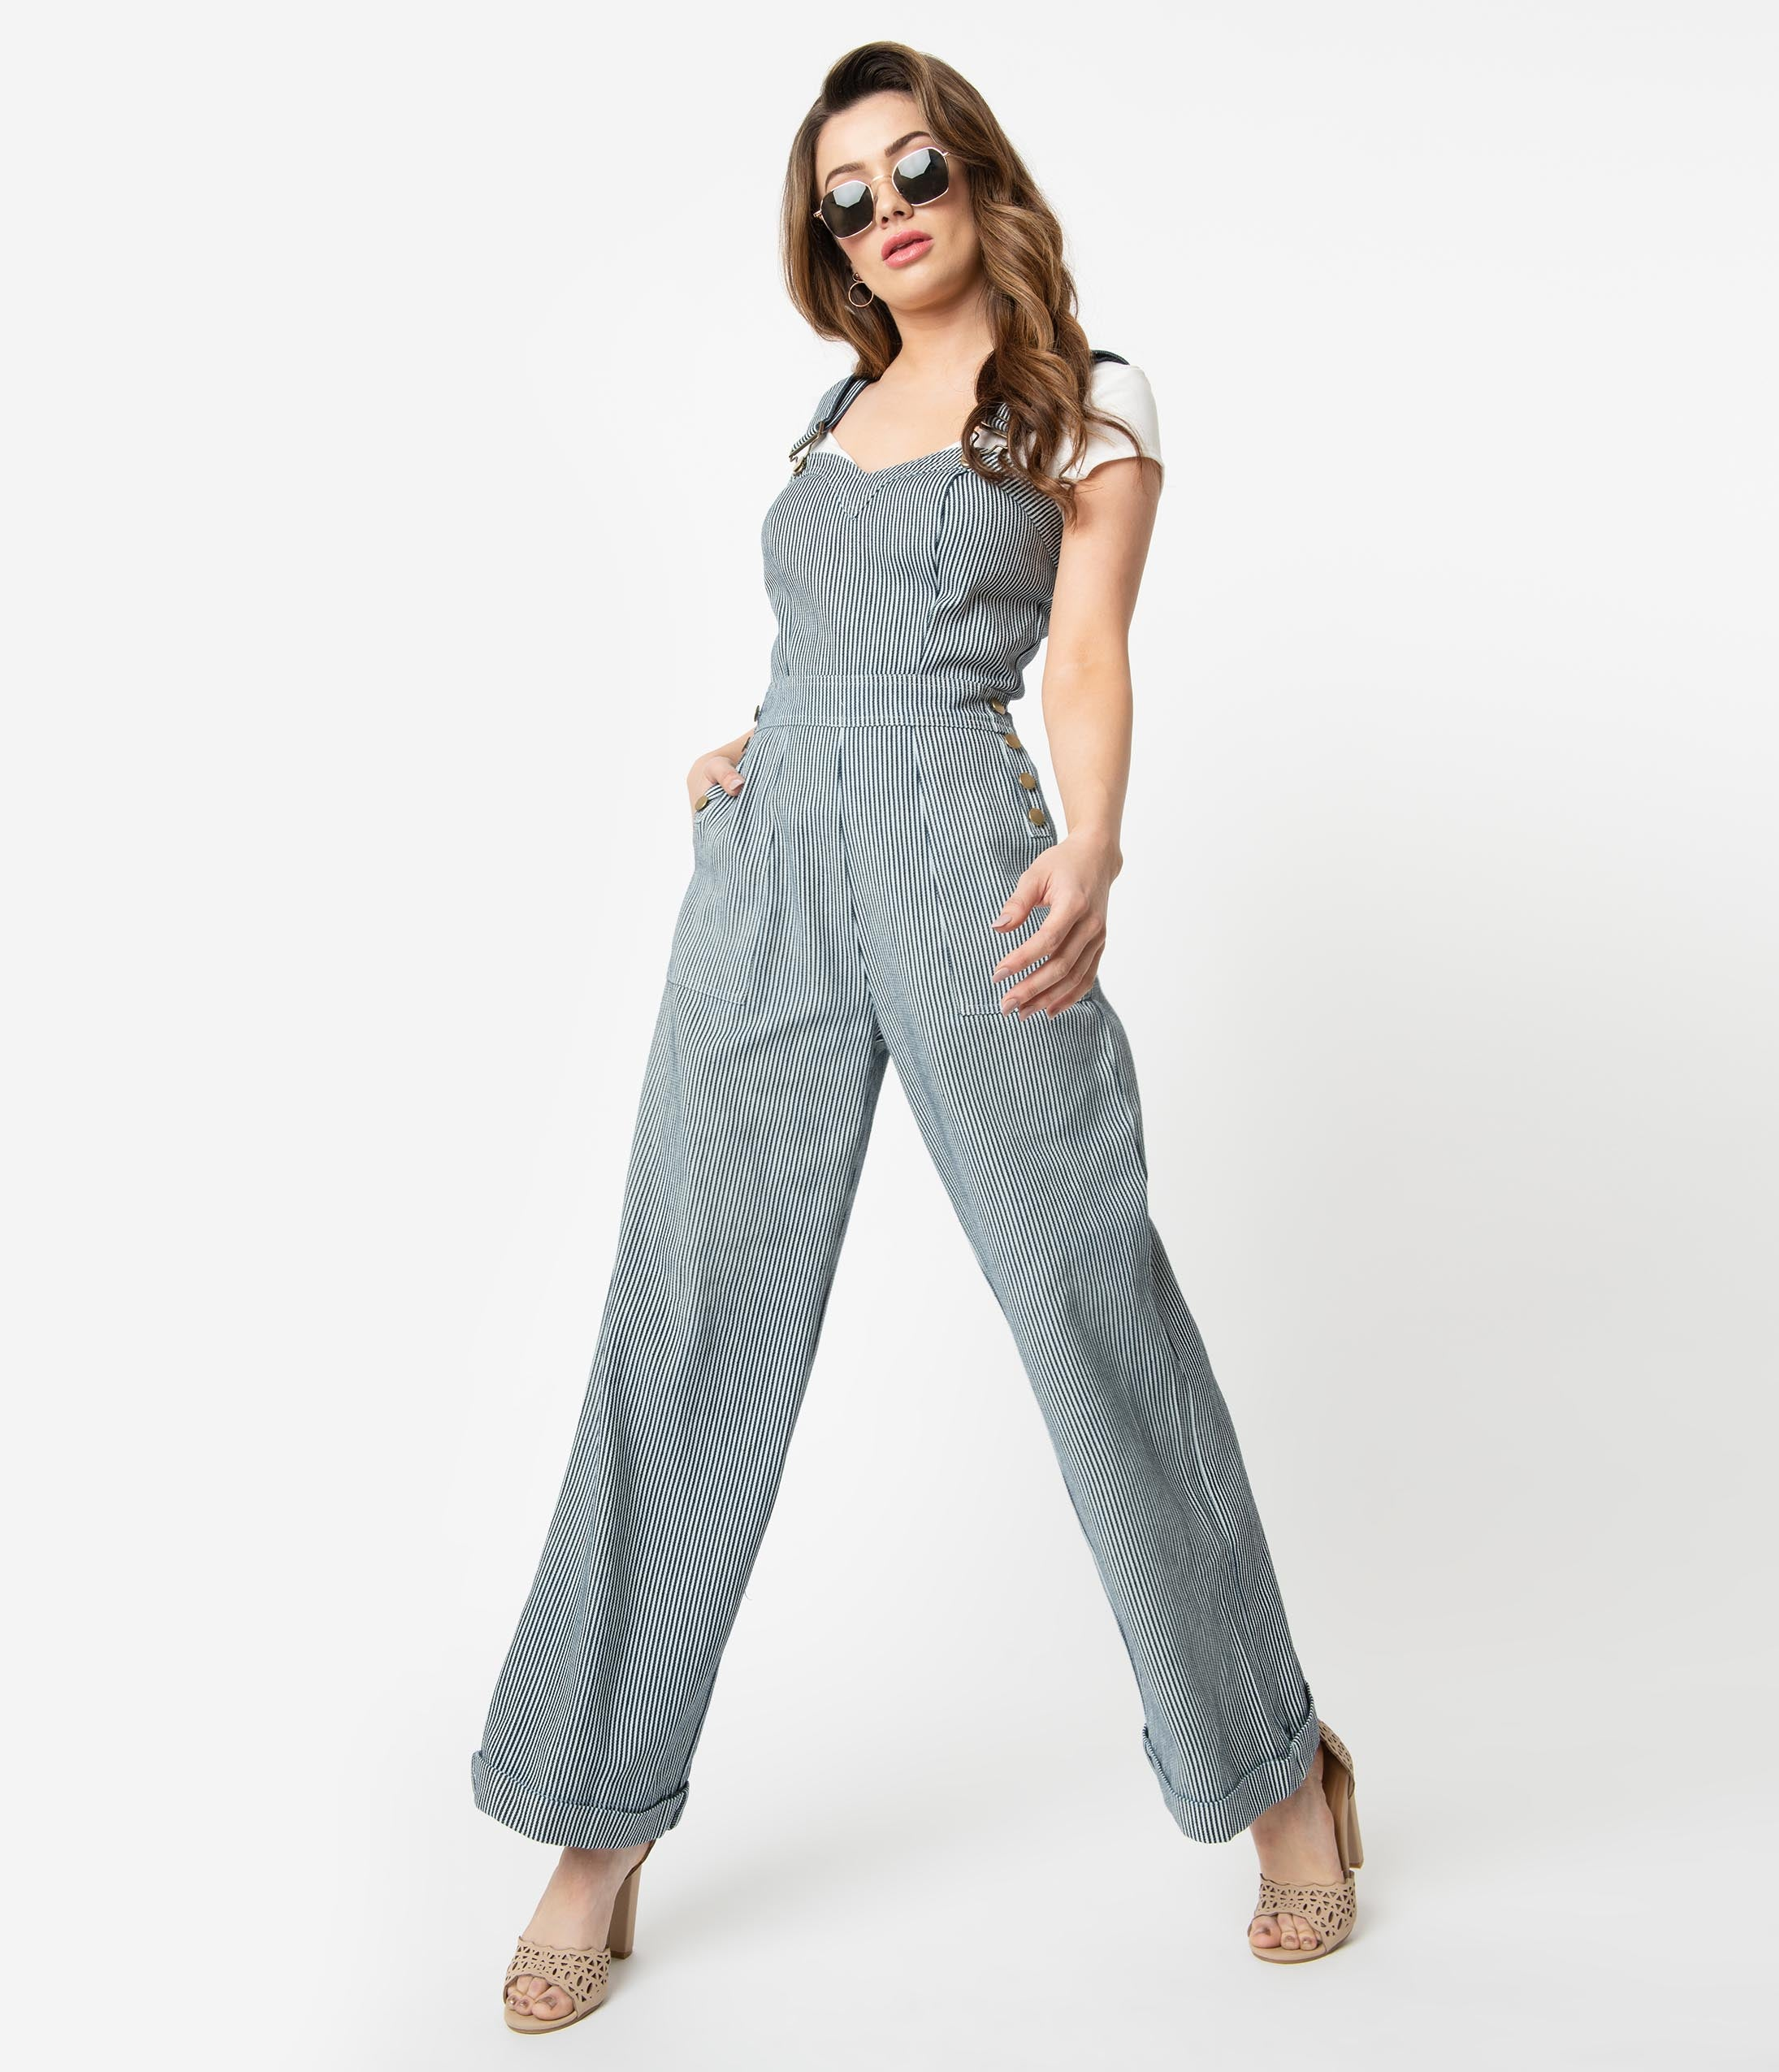 1940s Clothing Voodoo Vixen Navy  White Engineer Stripe Wide Leg Margaret Overalls Jumpsuit $88.00 AT vintagedancer.com